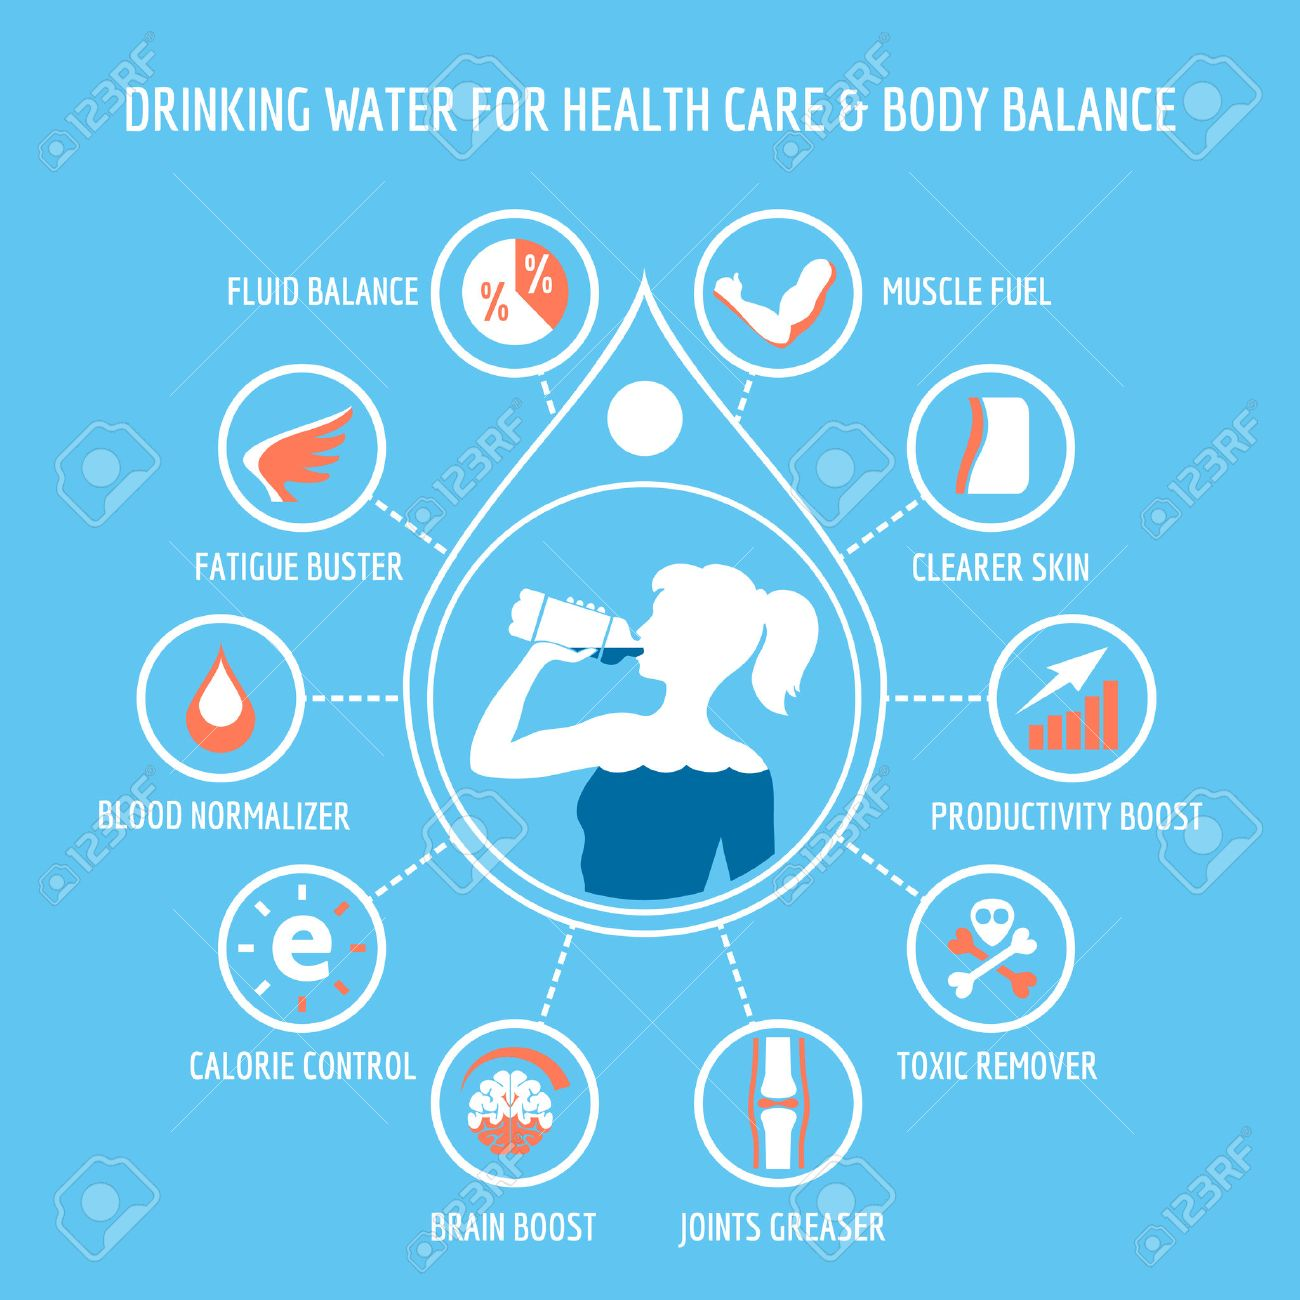 drinking water for health care and body balance vector infographic